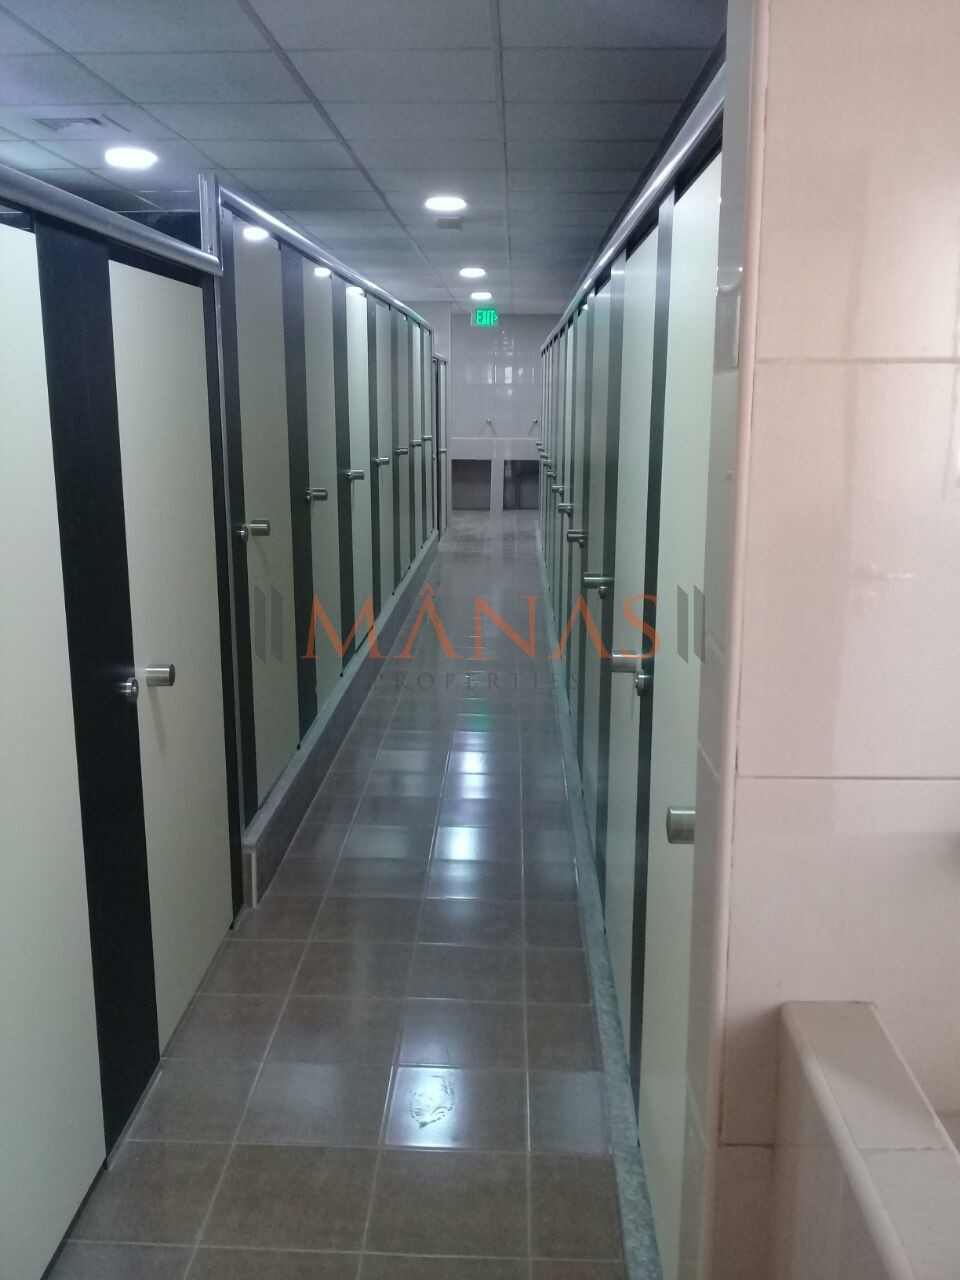 minimum-5-rooms-for-rent-in-al-quoz-near-al-khail-mall